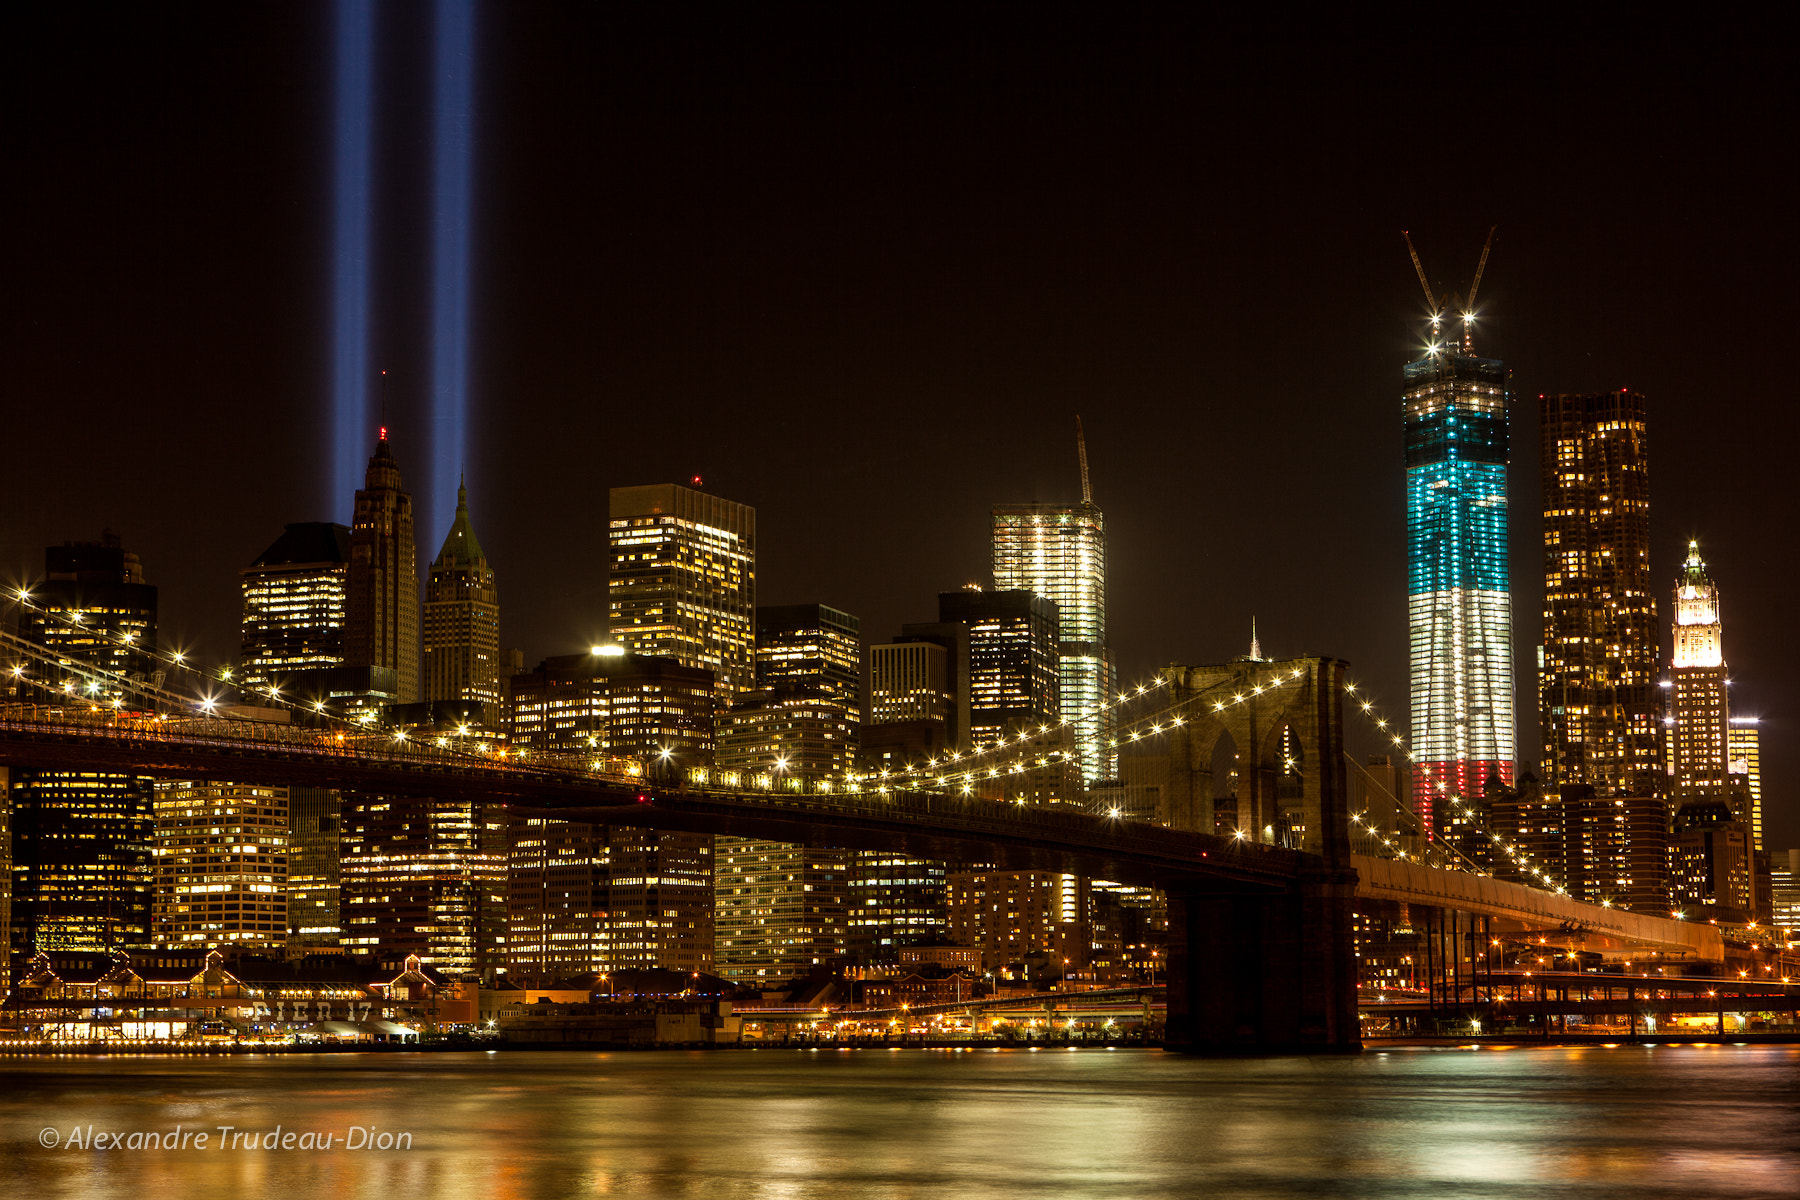 Photograph Tribute in light 2012 by Alexandre Trudeau-Dion on 500px